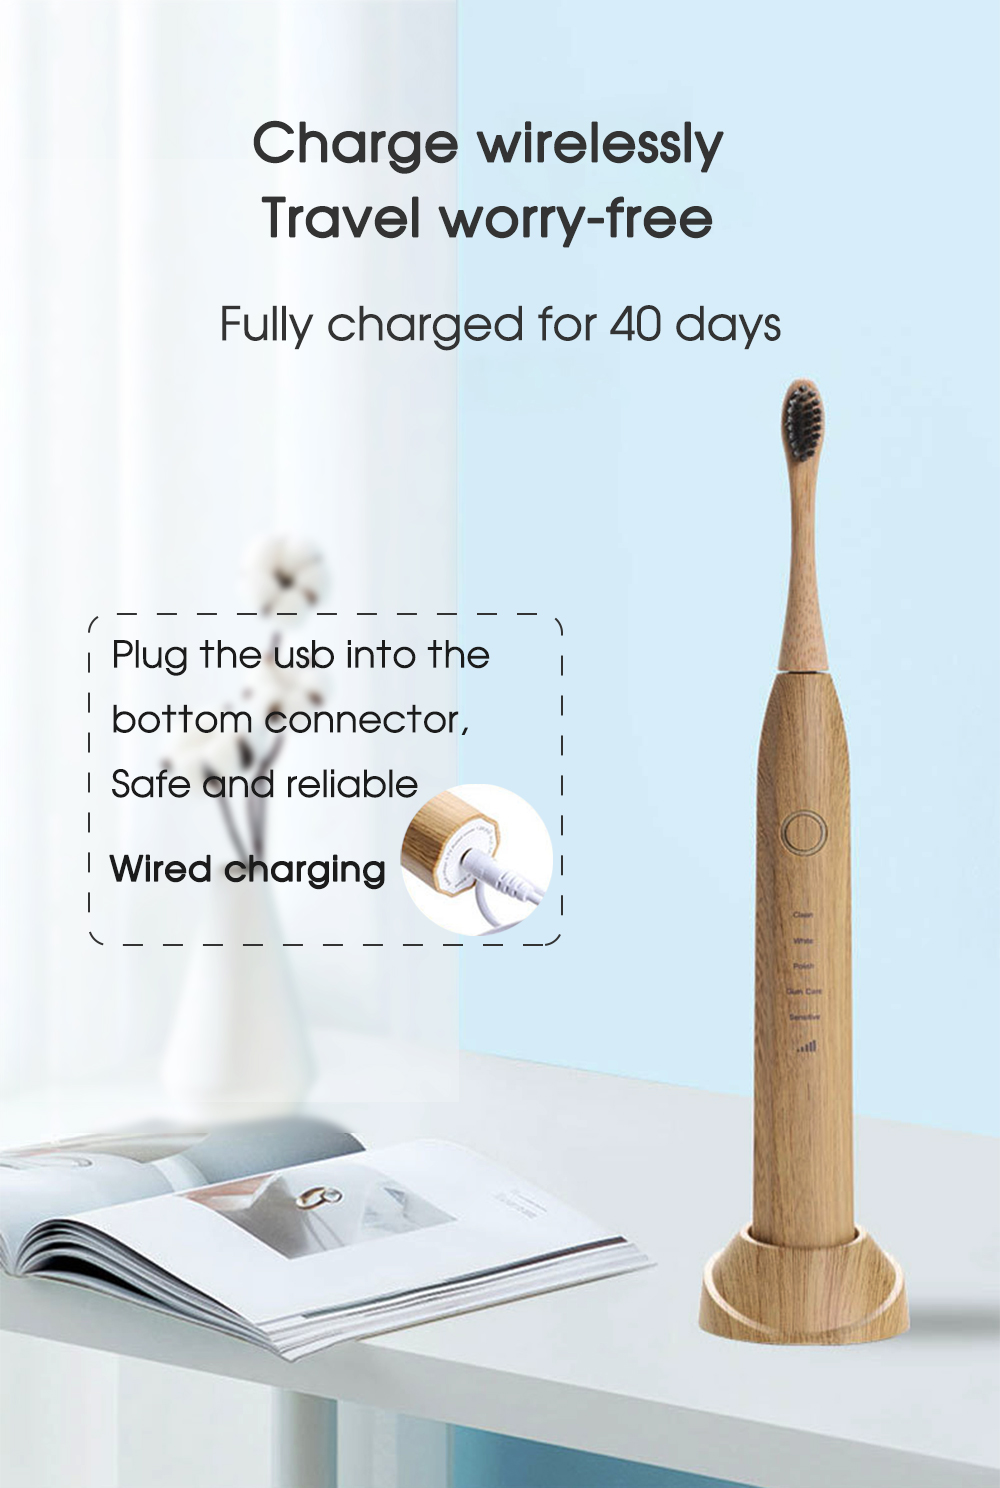 [zs] Bamboo Wood Material Electric Toothbrush Natural Environmental Friendly Reuse Intelligent Chargeable Teeth Clean Brushes